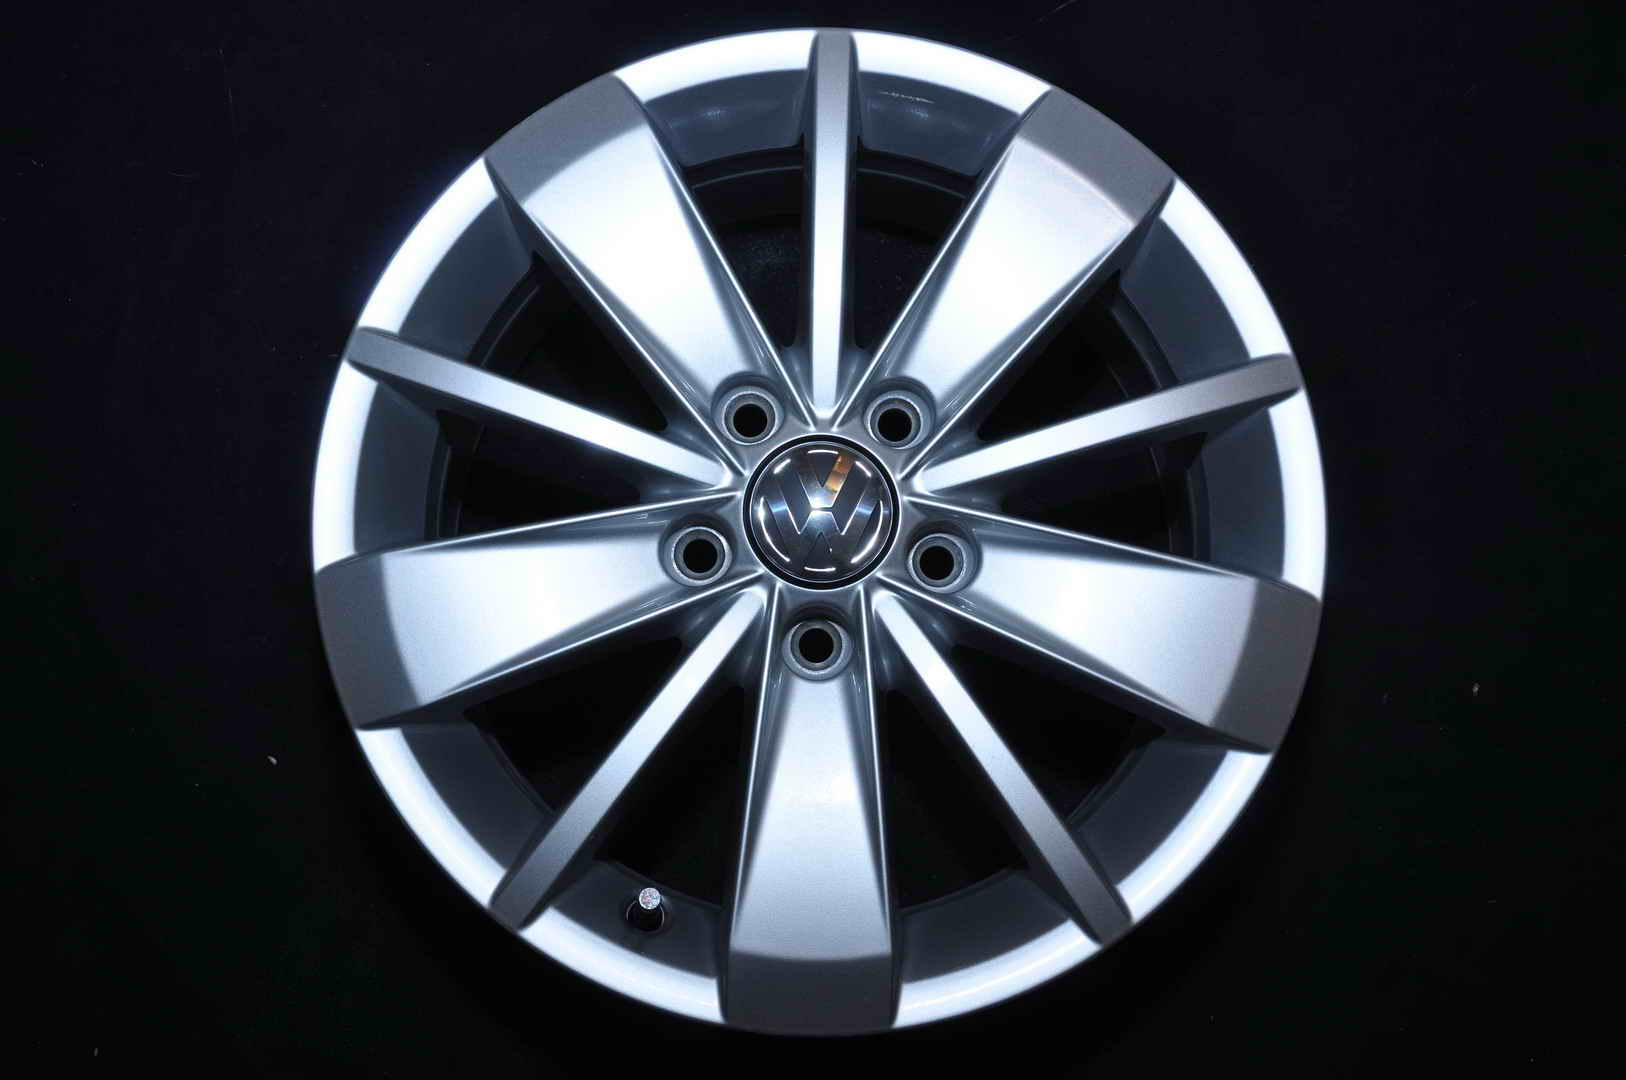 Jante Originale VW Golf Jetta 6.5J 16 inch ET50 5C0601025AM 13